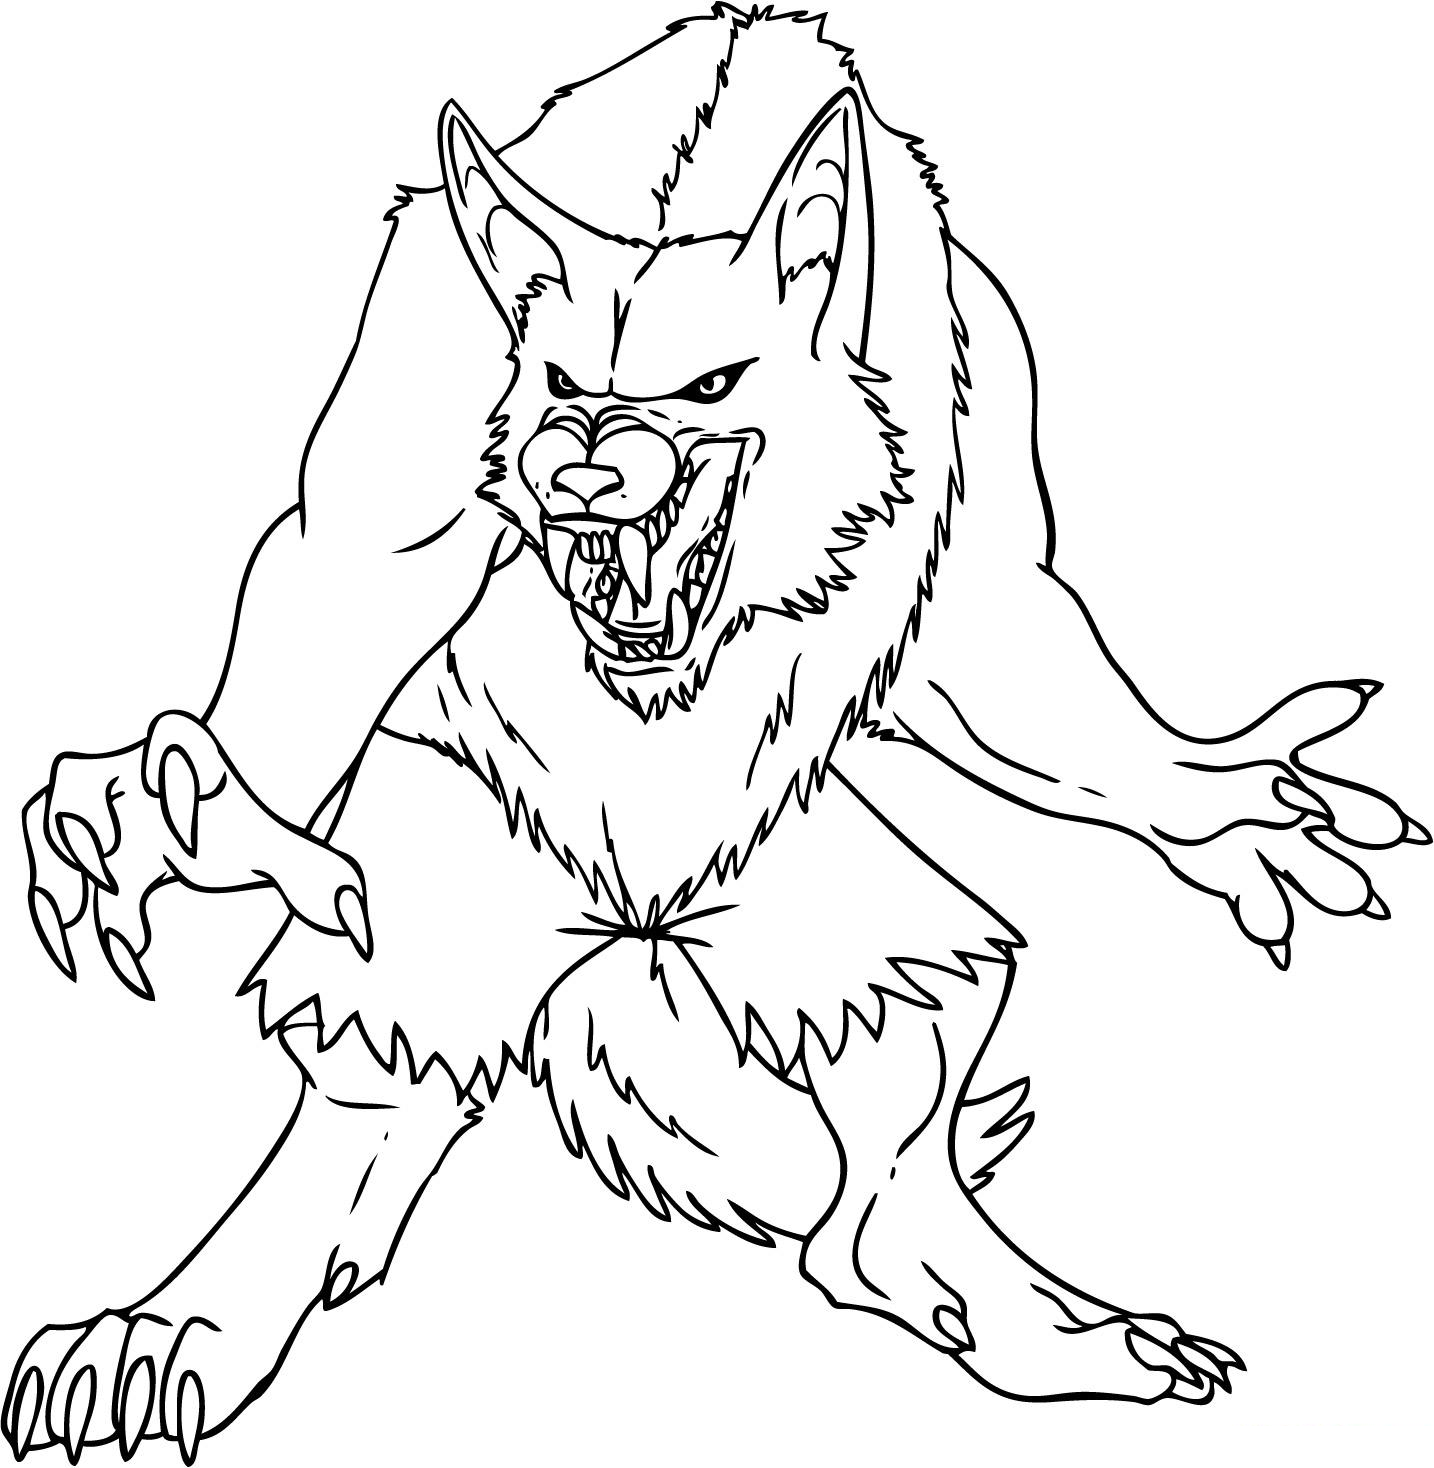 Werewolf Coloring Pages Kids Coloring Pages Free Printable Coloring Pages Download Monster Coloring Pages Animal Coloring Pages Werewolf